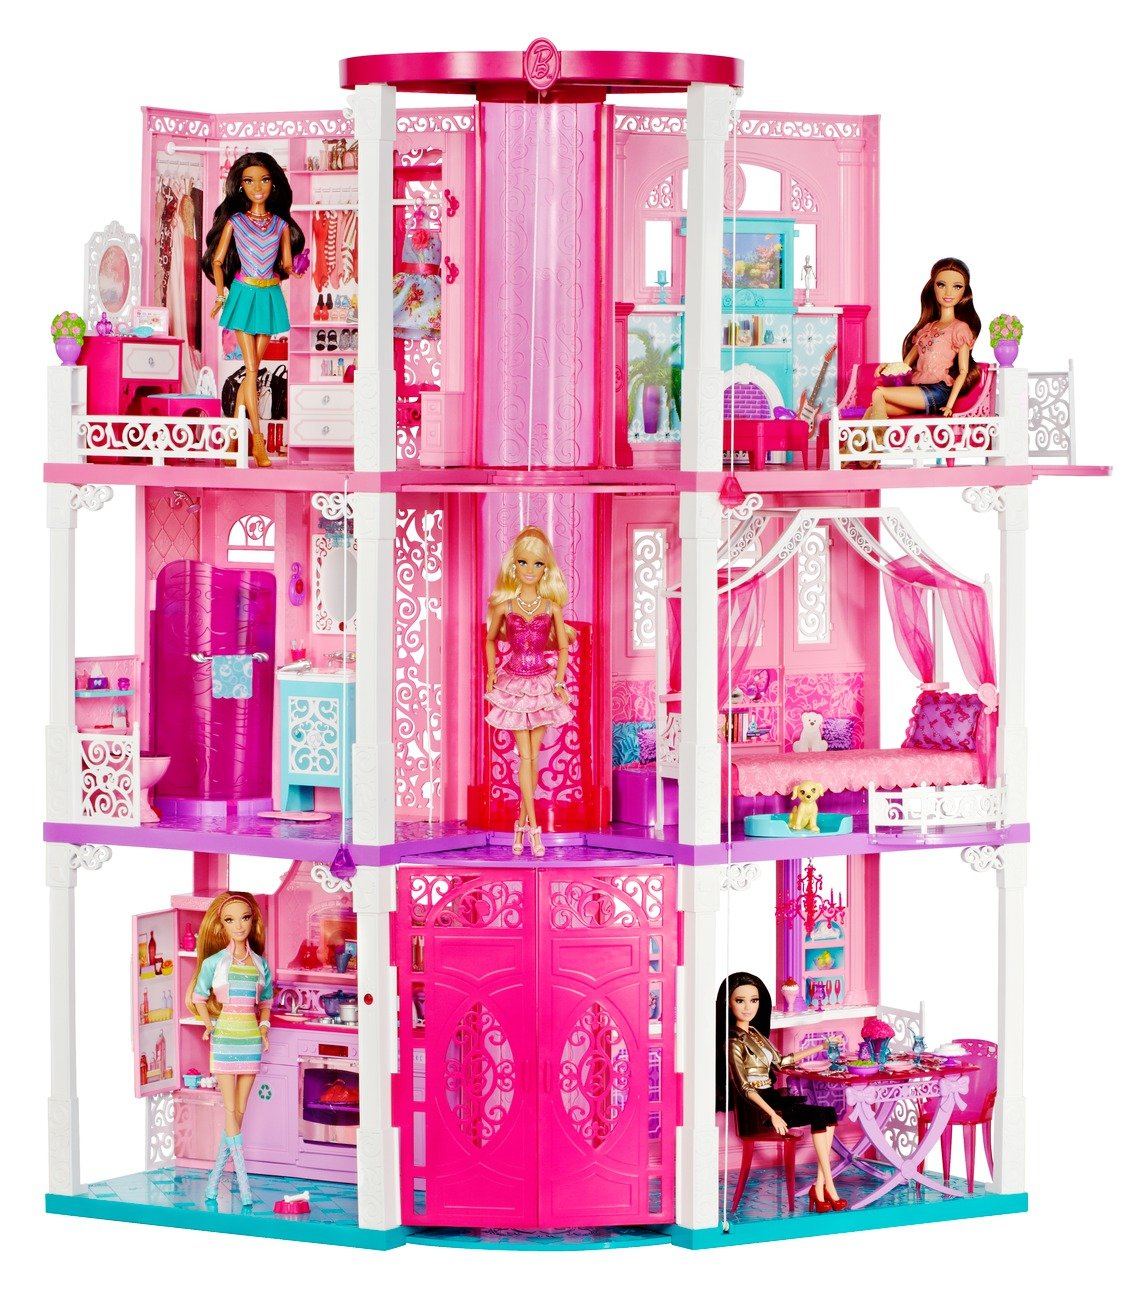 Barbie dream house layout